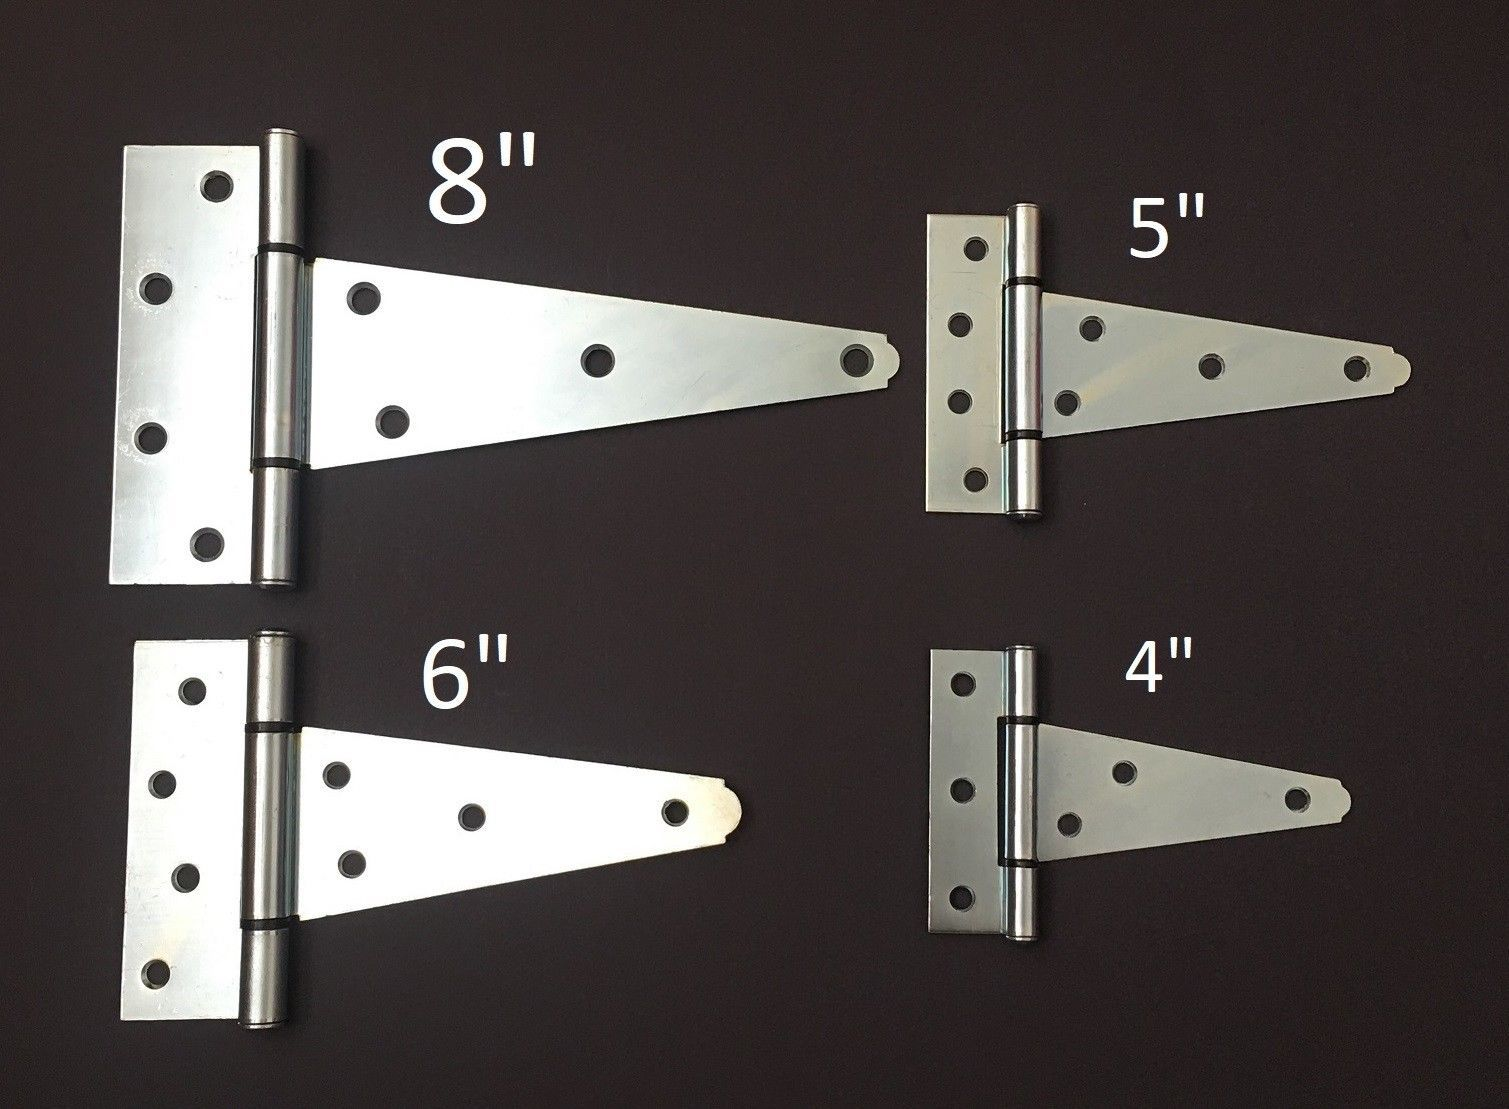 Door Hinges 66739 4 5 6 8 Heavy Duty Tee T Hinges Zinc Plated For Fence Gate Barn Shed Door Buy It Now Only 29 75 On Eb Door Hinges Zinc Plating T Hinges